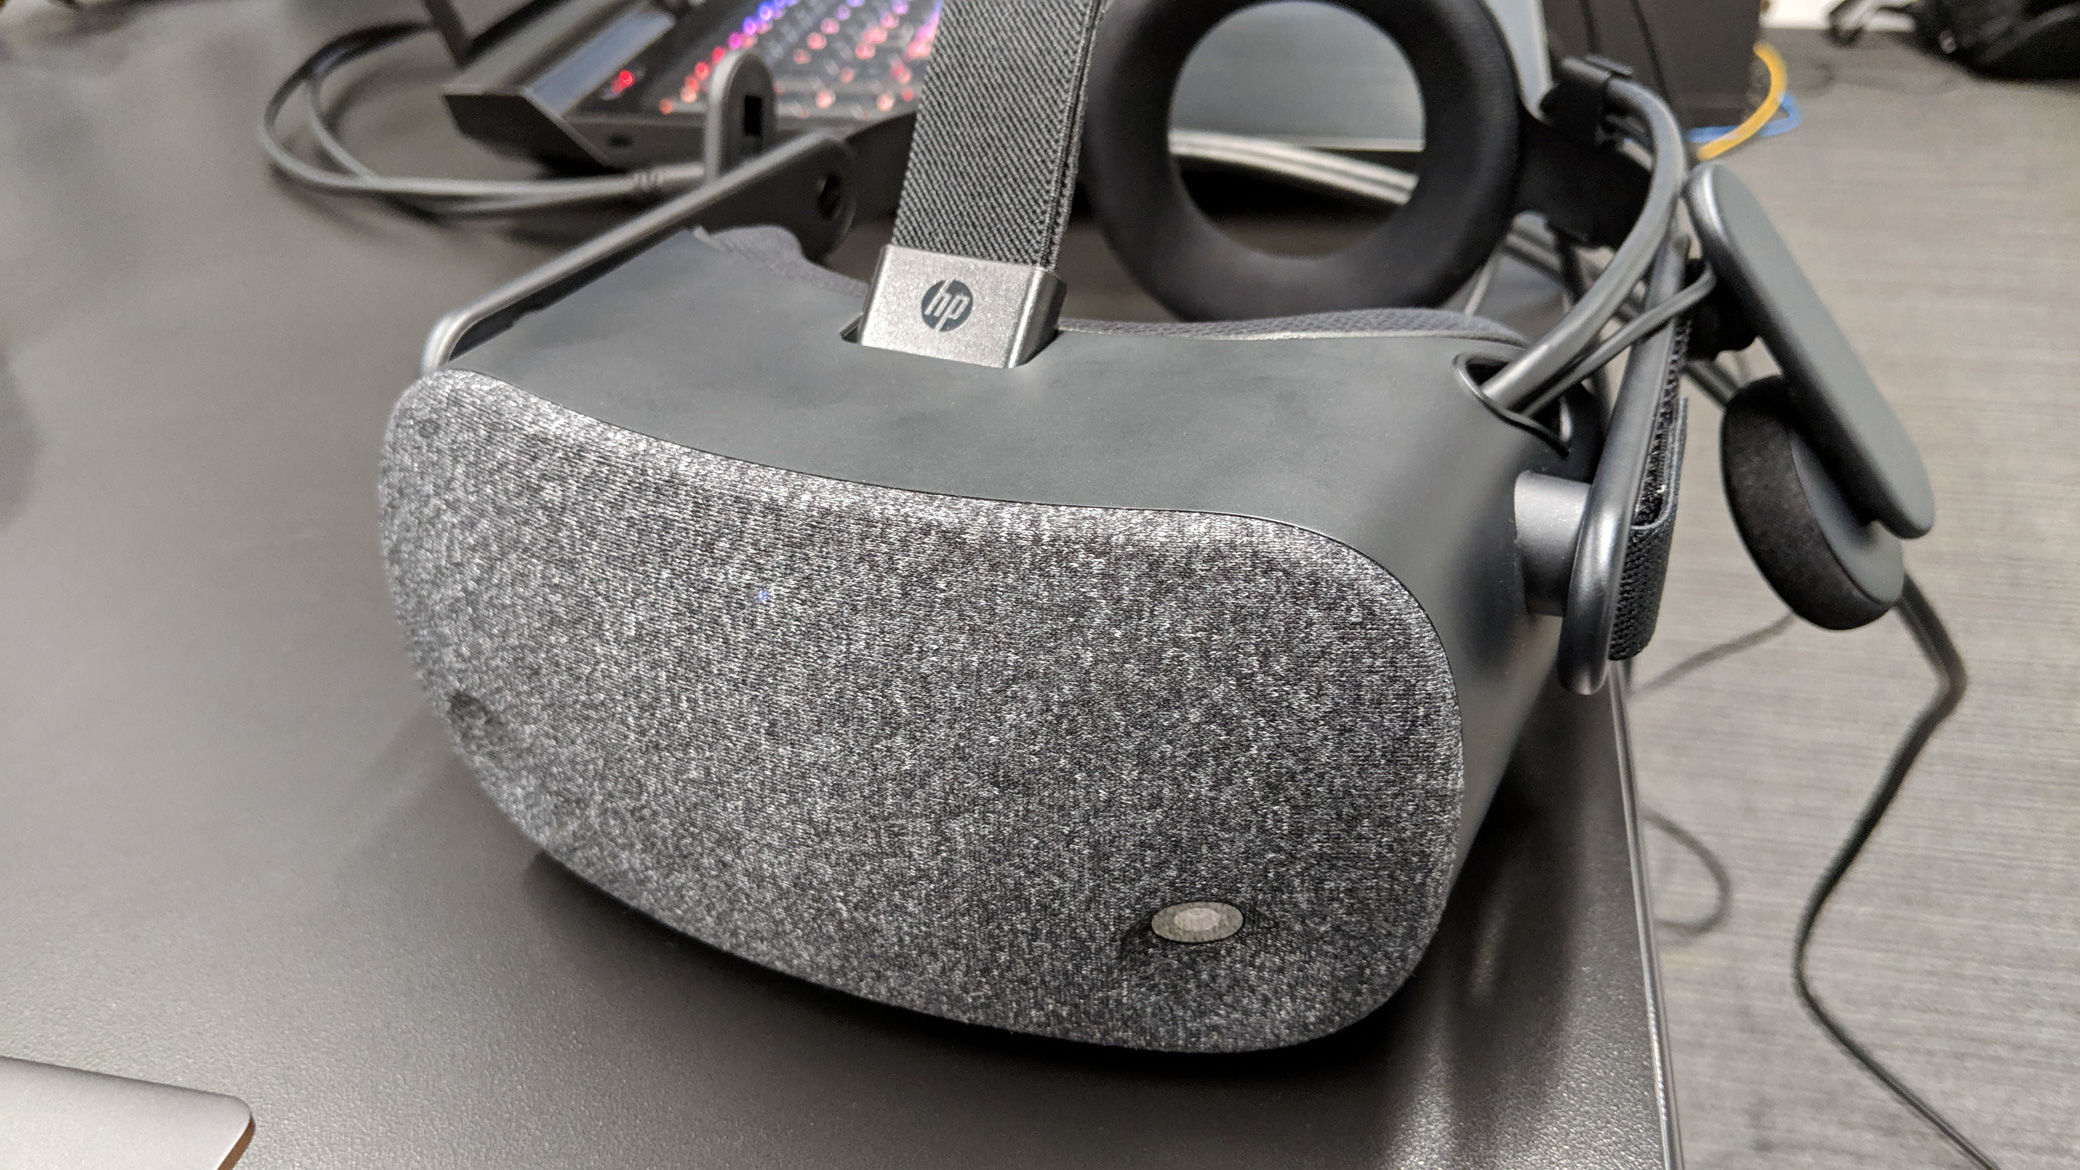 HP unveils Reverb high-res VR headset